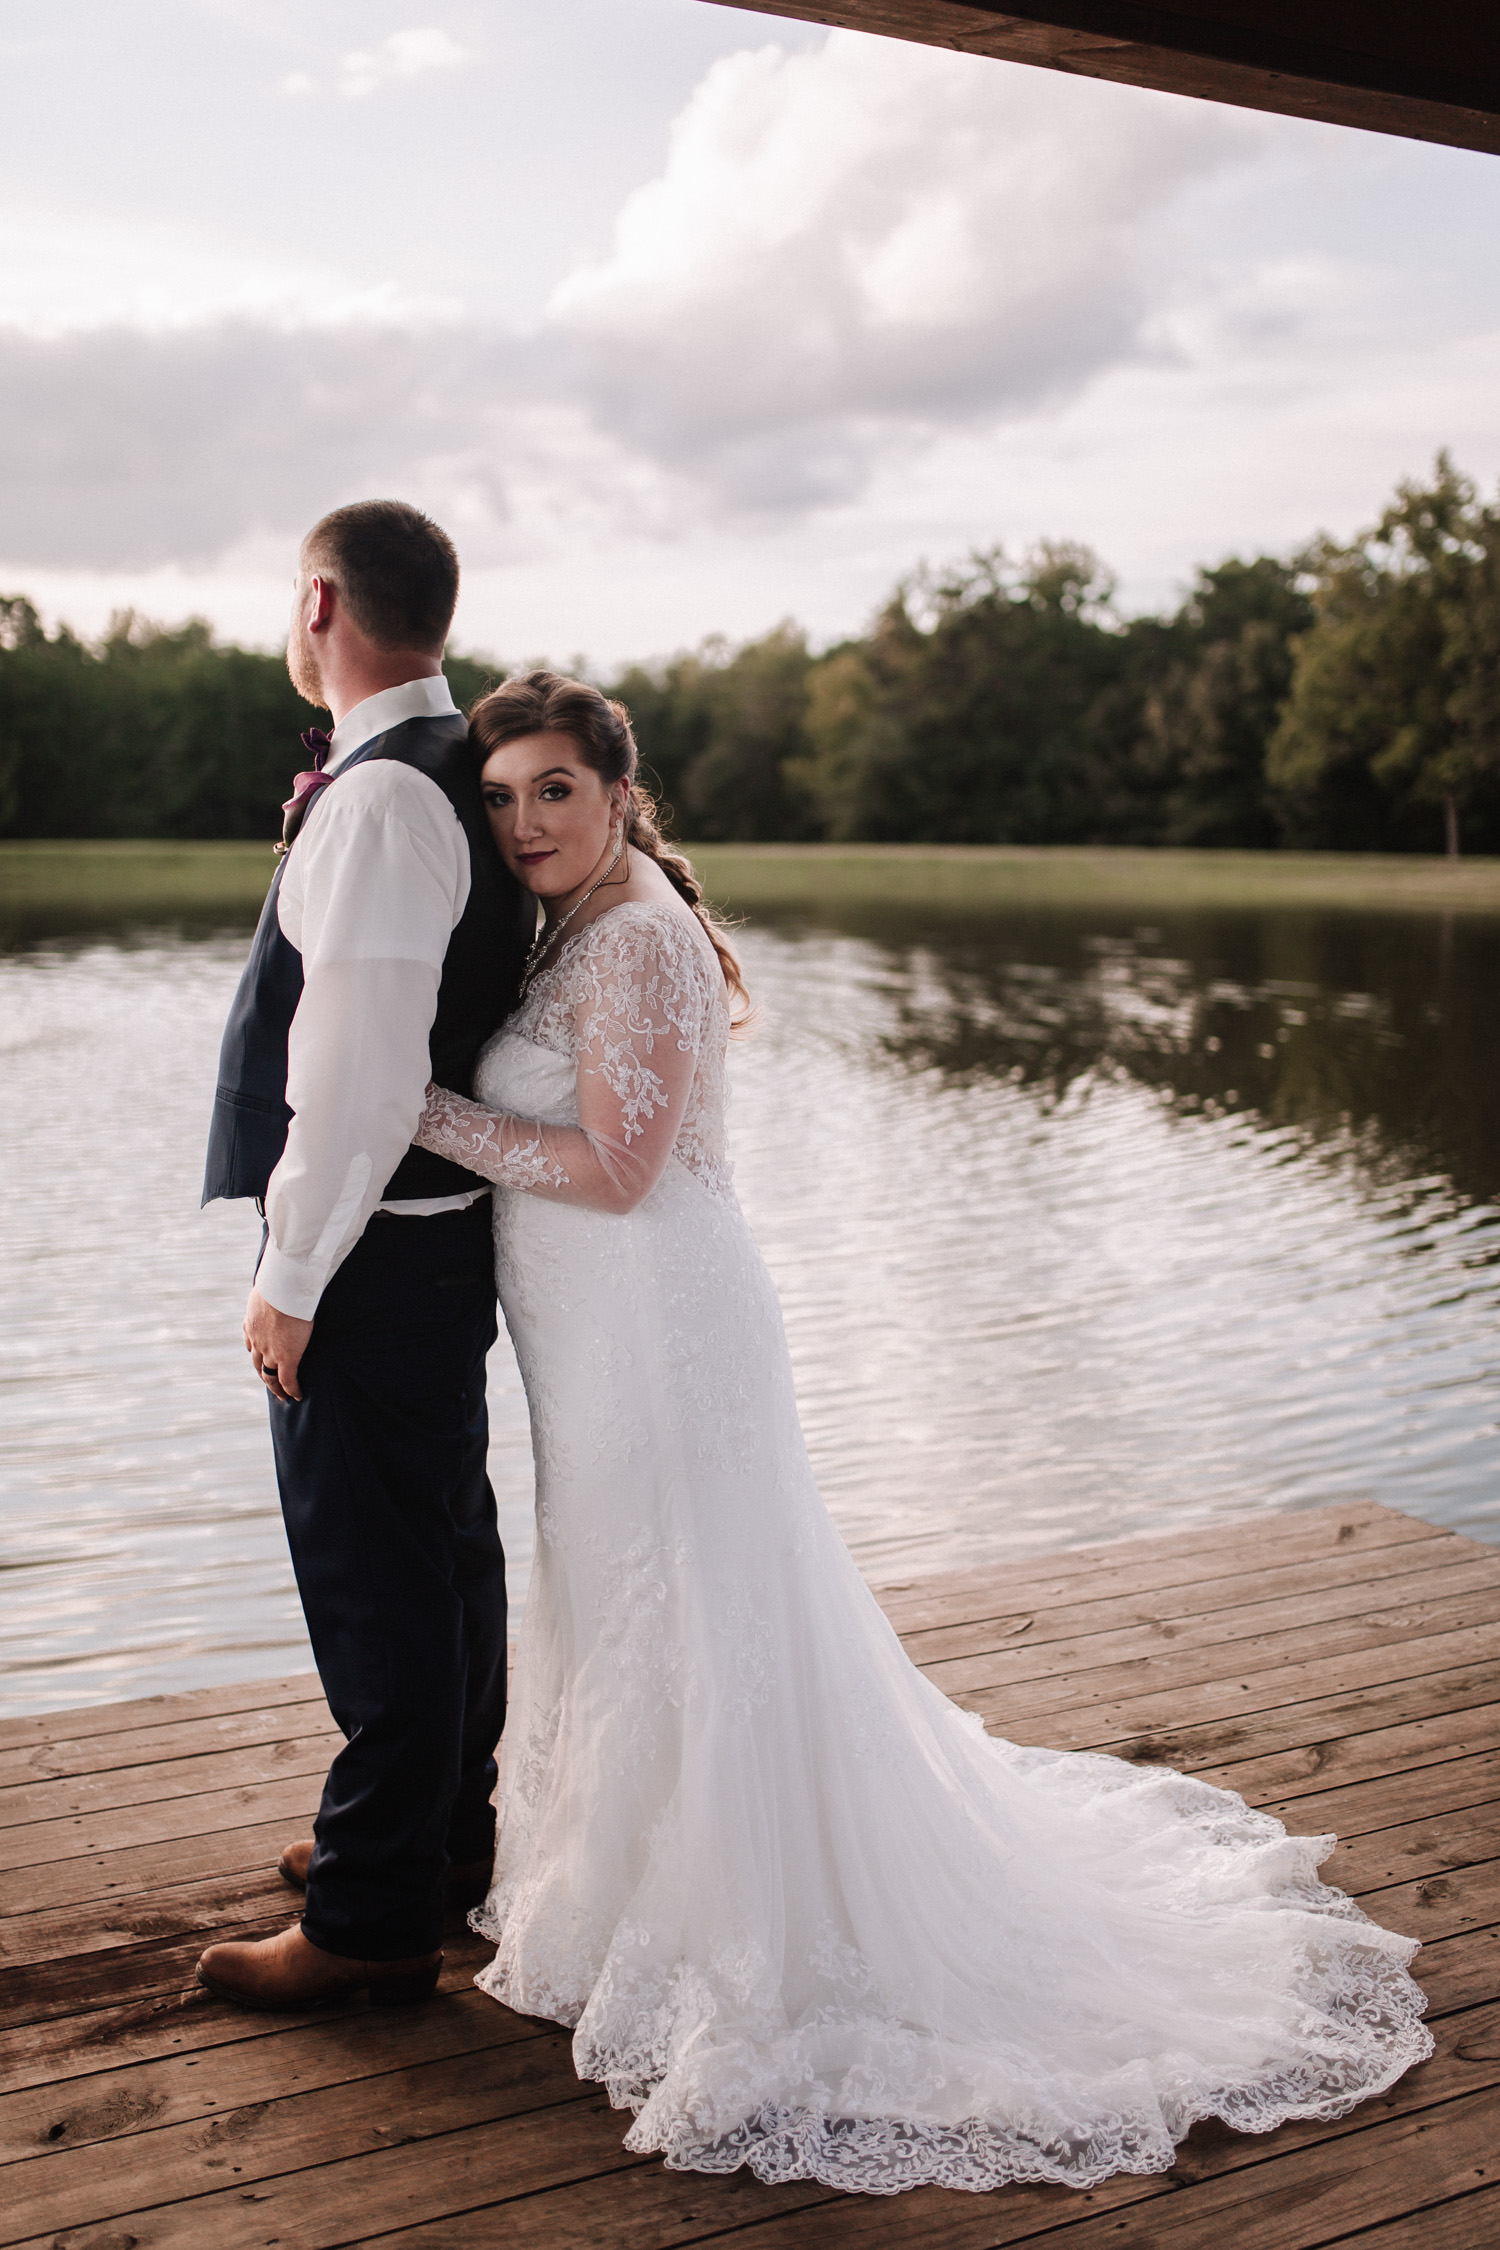 Classy, Southern, Country Wedding | Bridal and Groom portraits at Atkinson Farms in Danville, Virginia | Greensboro Winston-Salem, NC Wedding Photographer